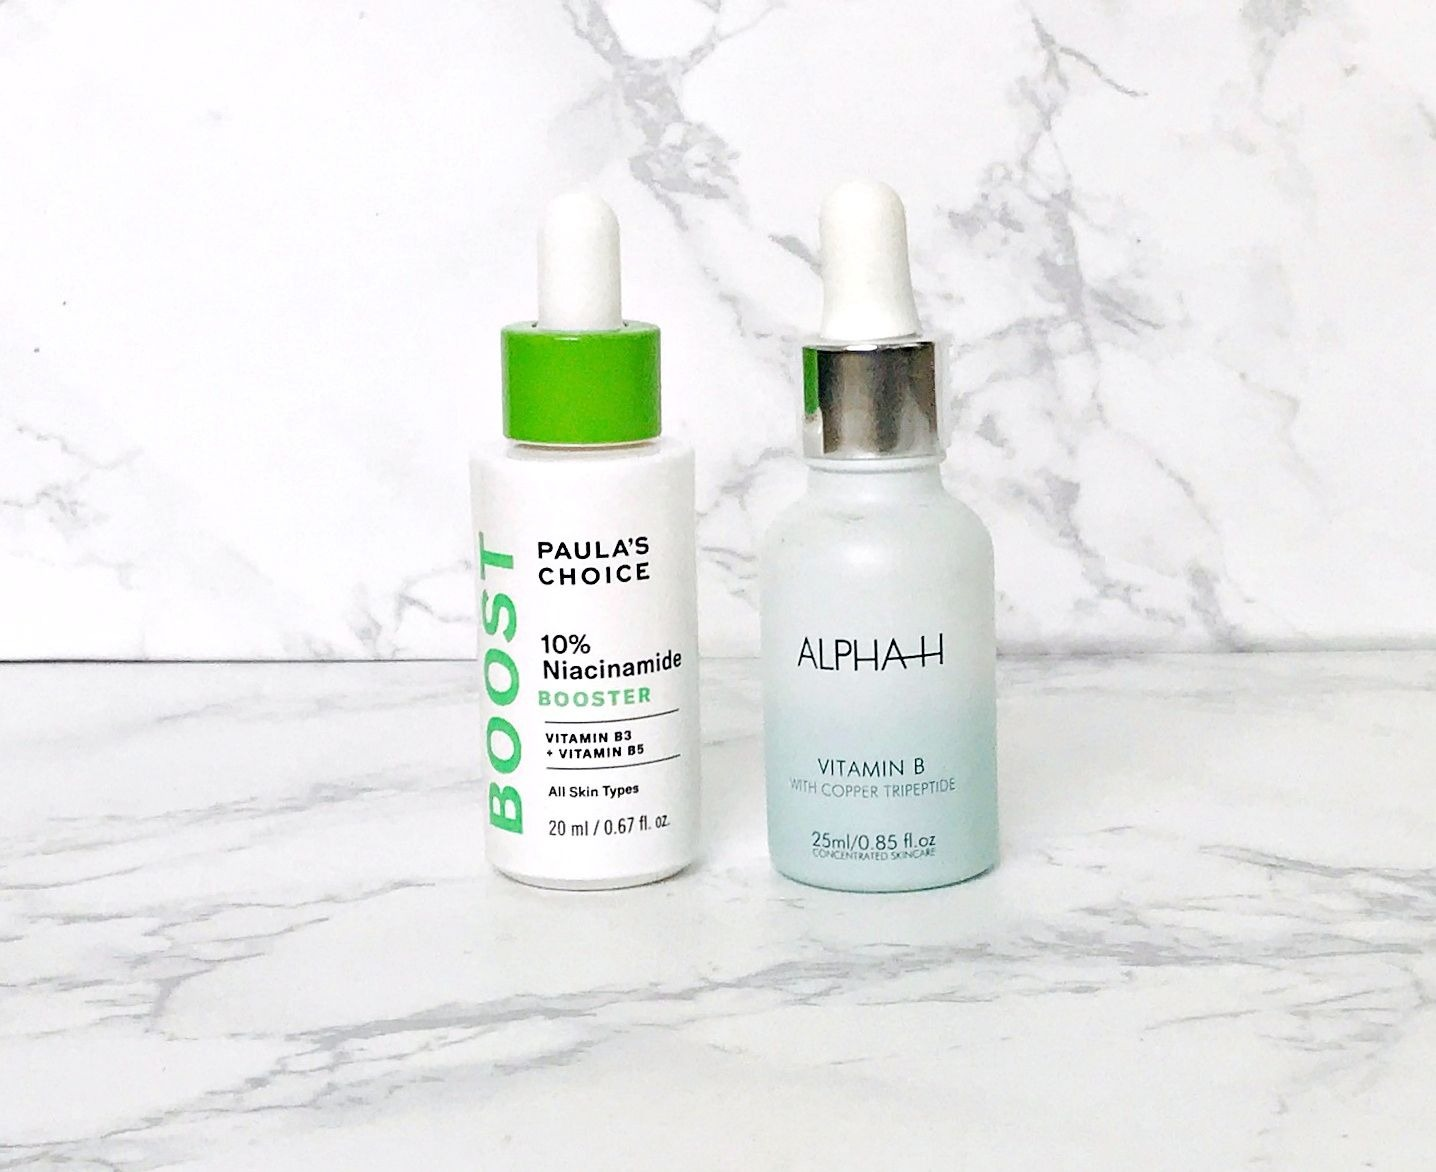 Niacinamide, Alpha-H Vitamin B, Paula's Choice 10% Niacinamide Booster, Why you need Niacinamide in your daily routine